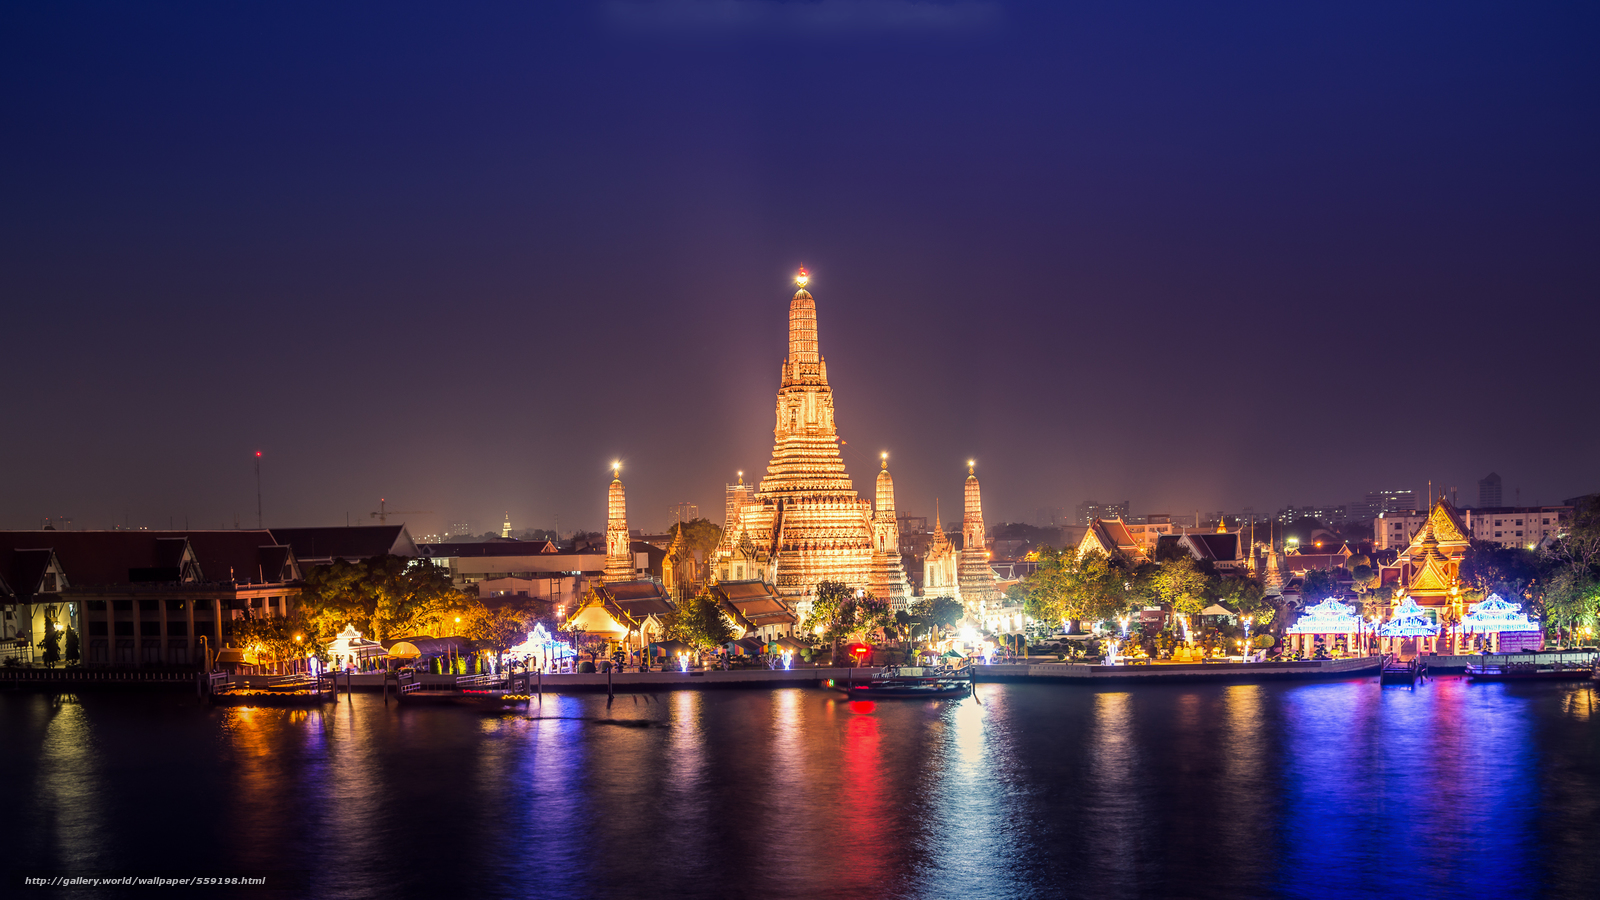 Download wallpaper bangkok sunset thailand free desktop for Thai wallpaper gallery